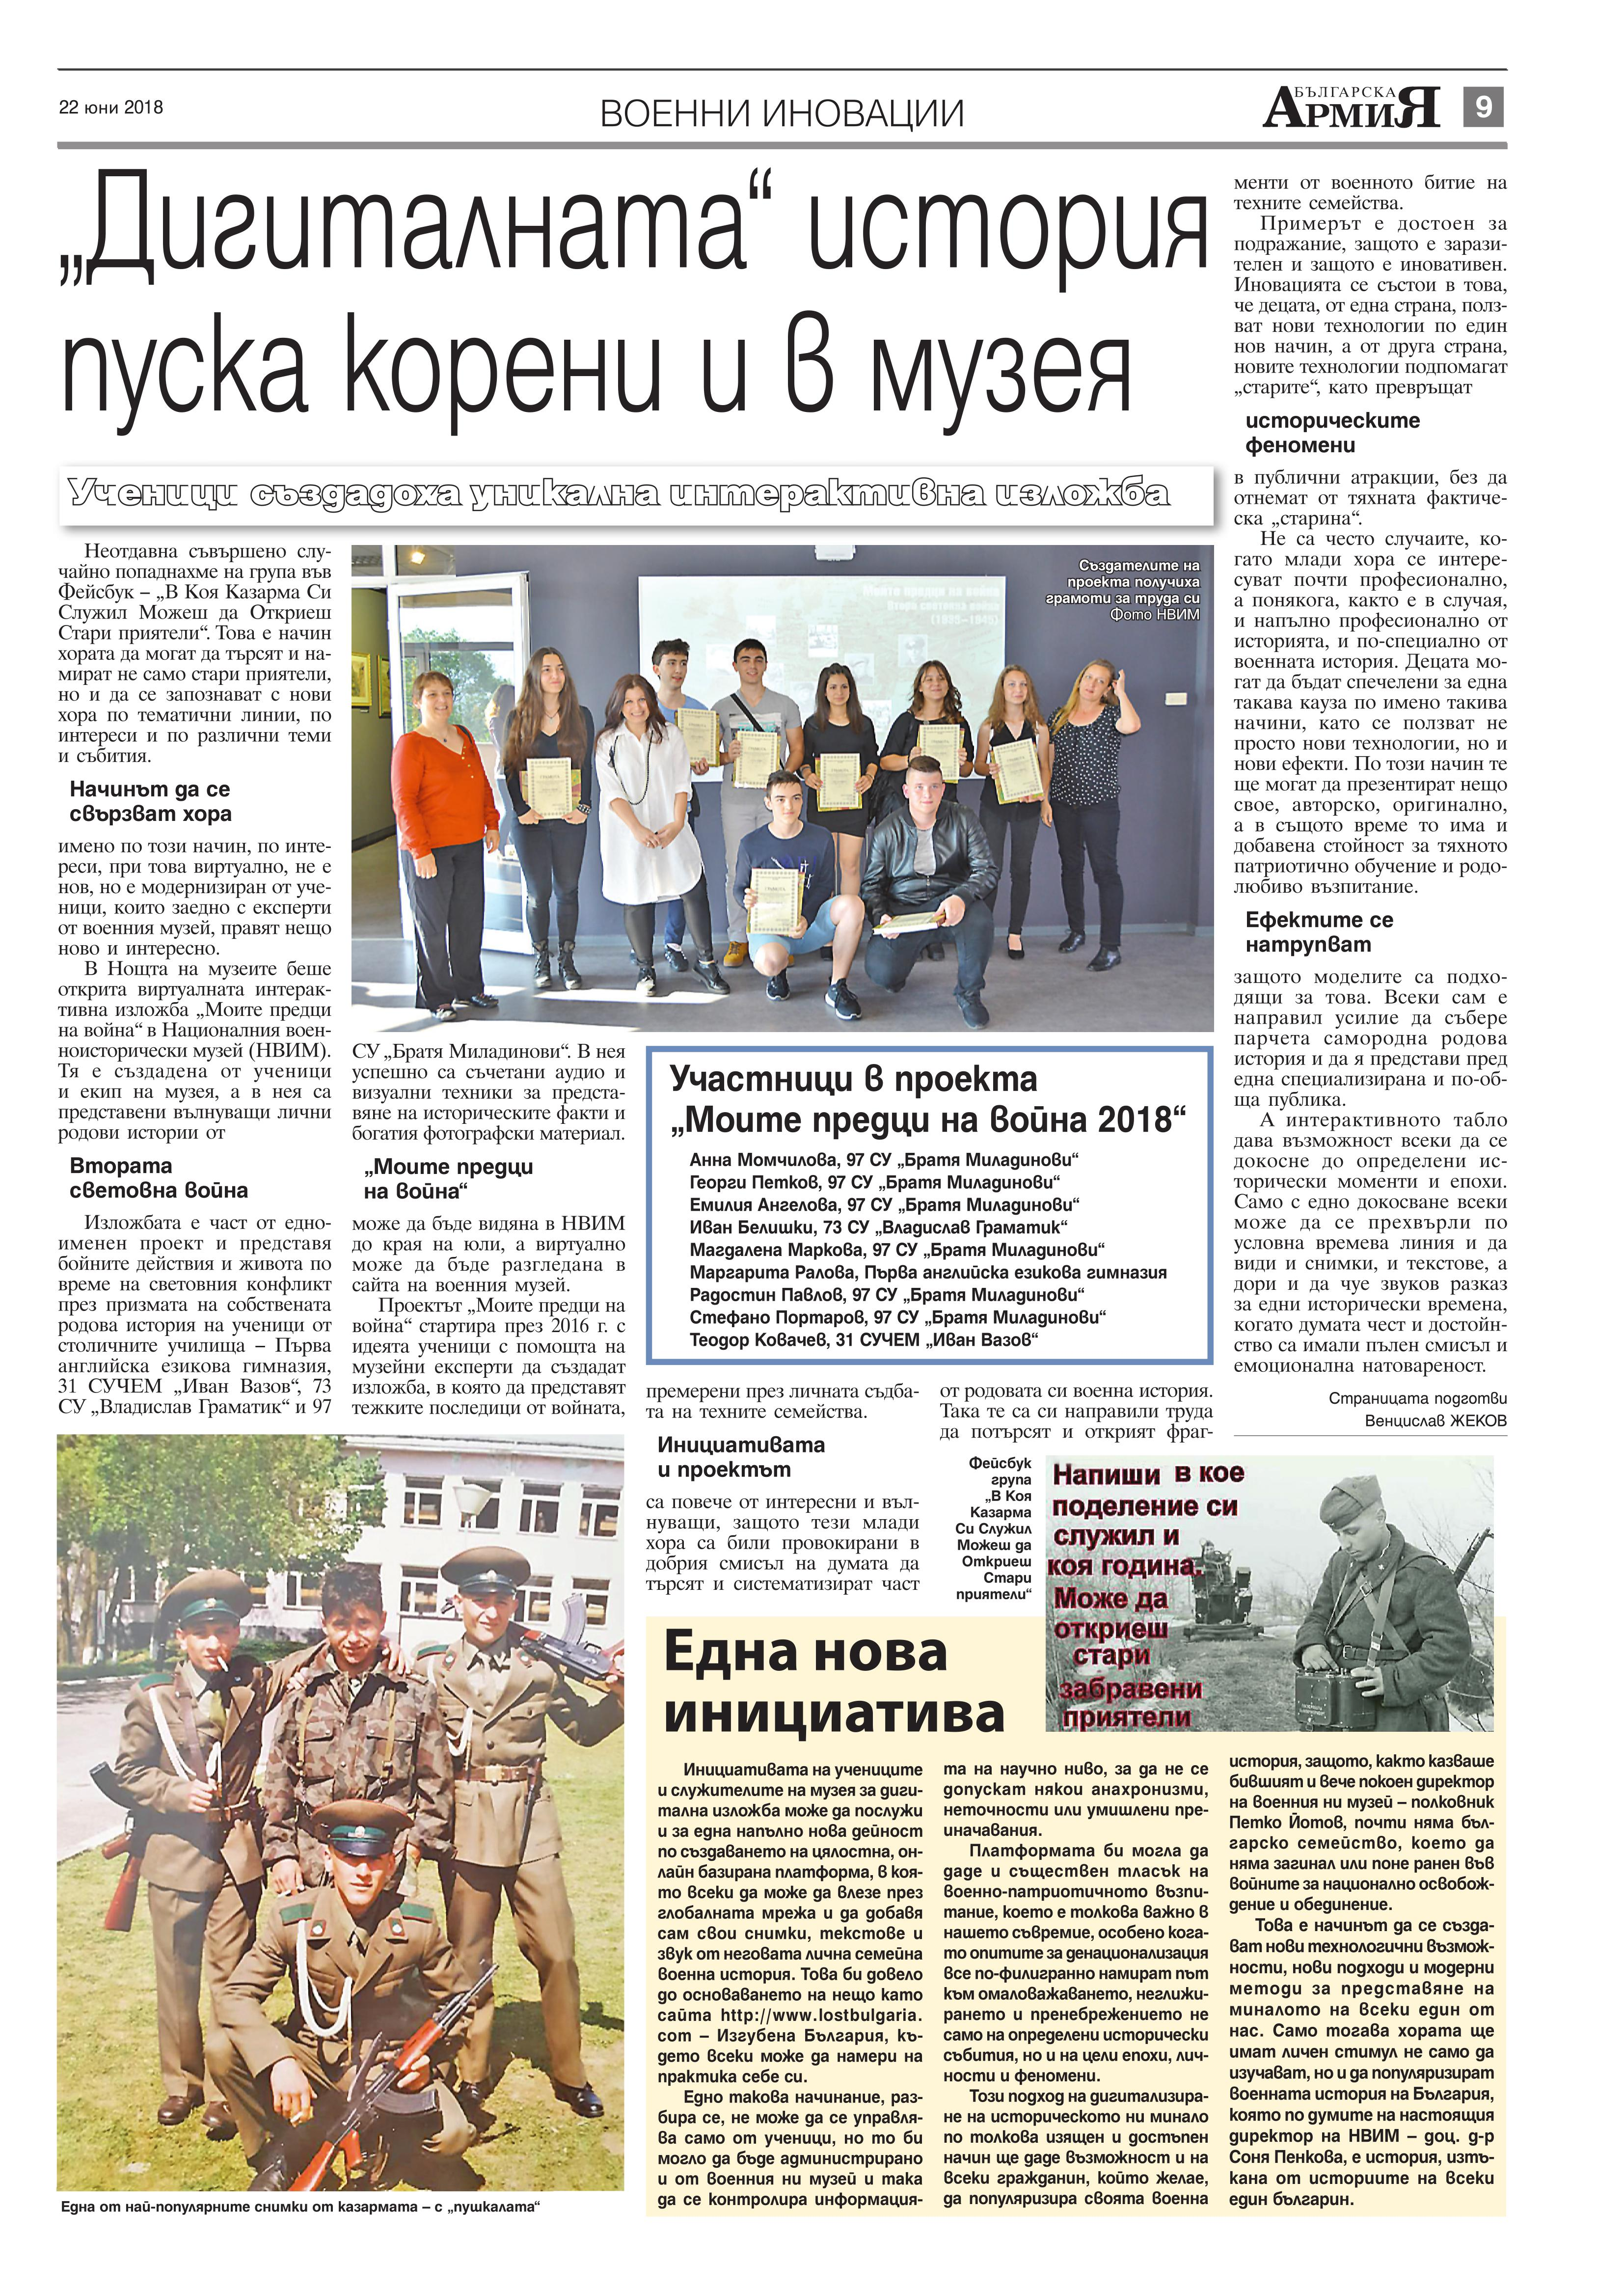 http://armymedia.bg/wp-content/uploads/2015/06/09.page1_-54.jpg